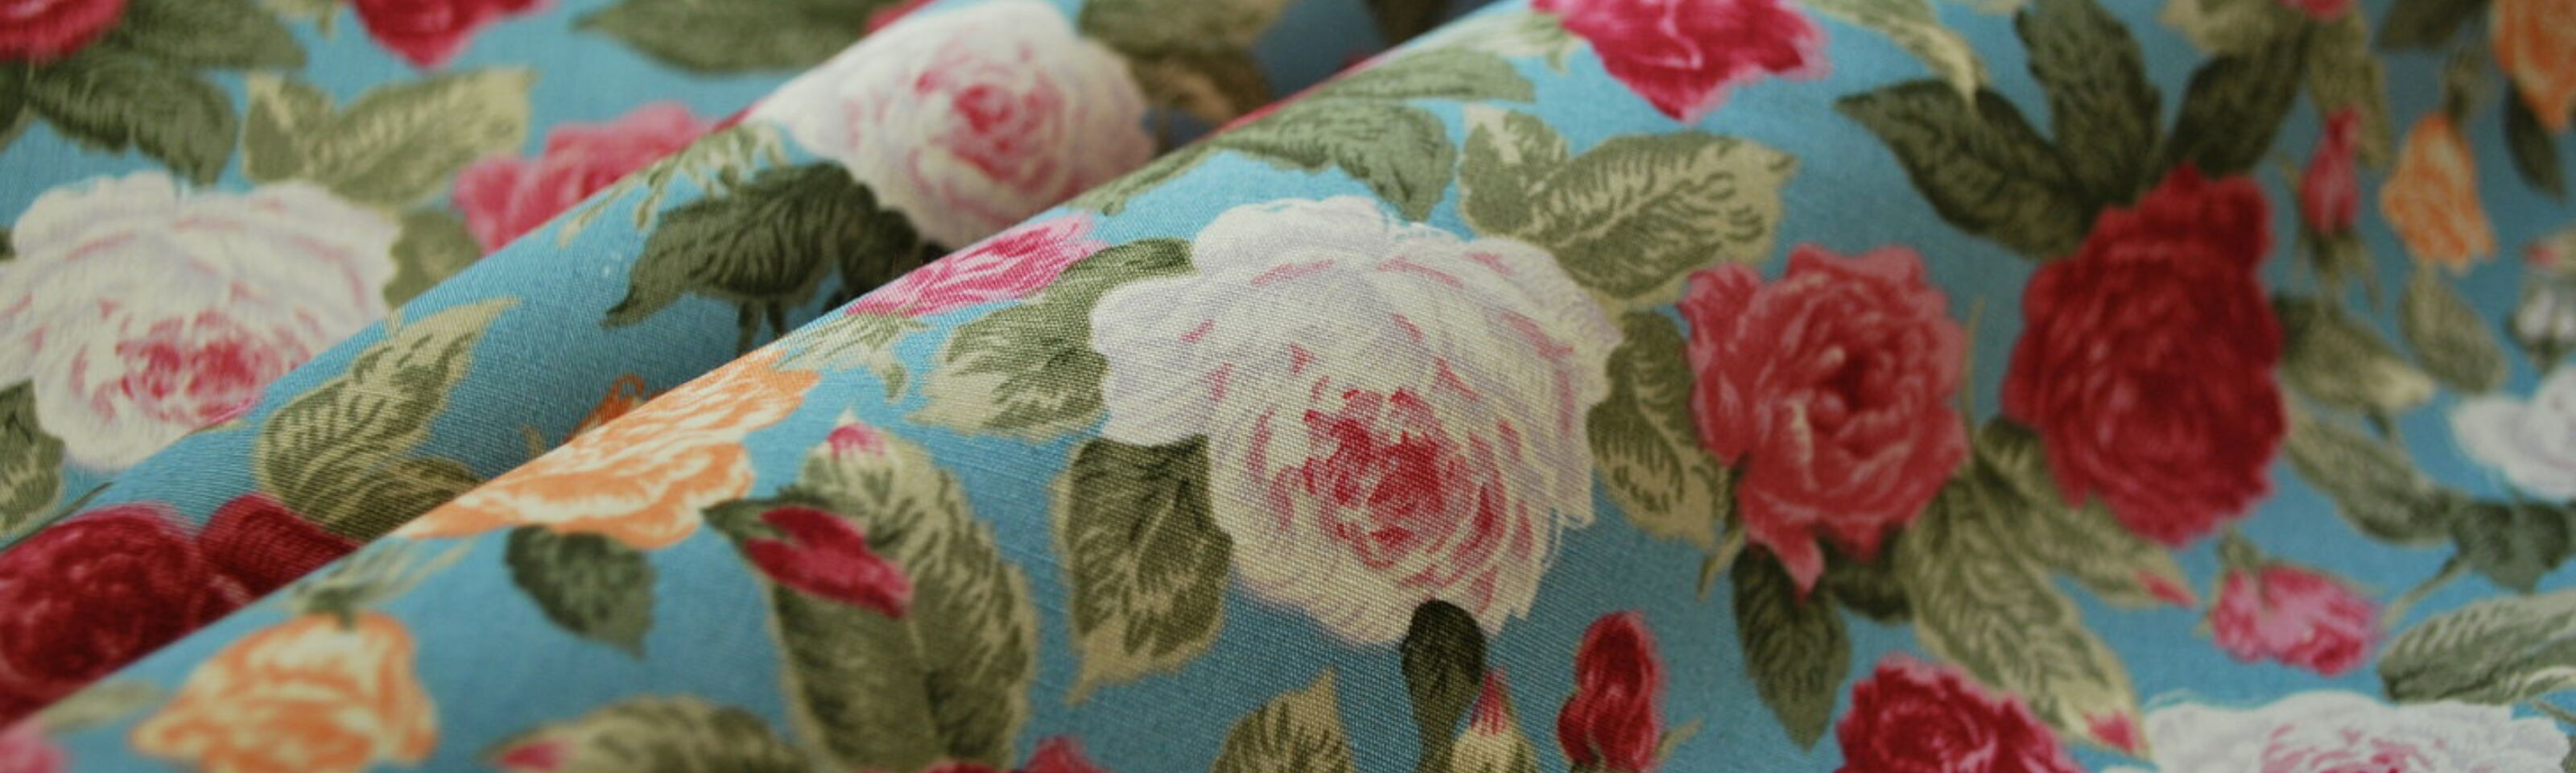 English Rose - Cotton Poplin